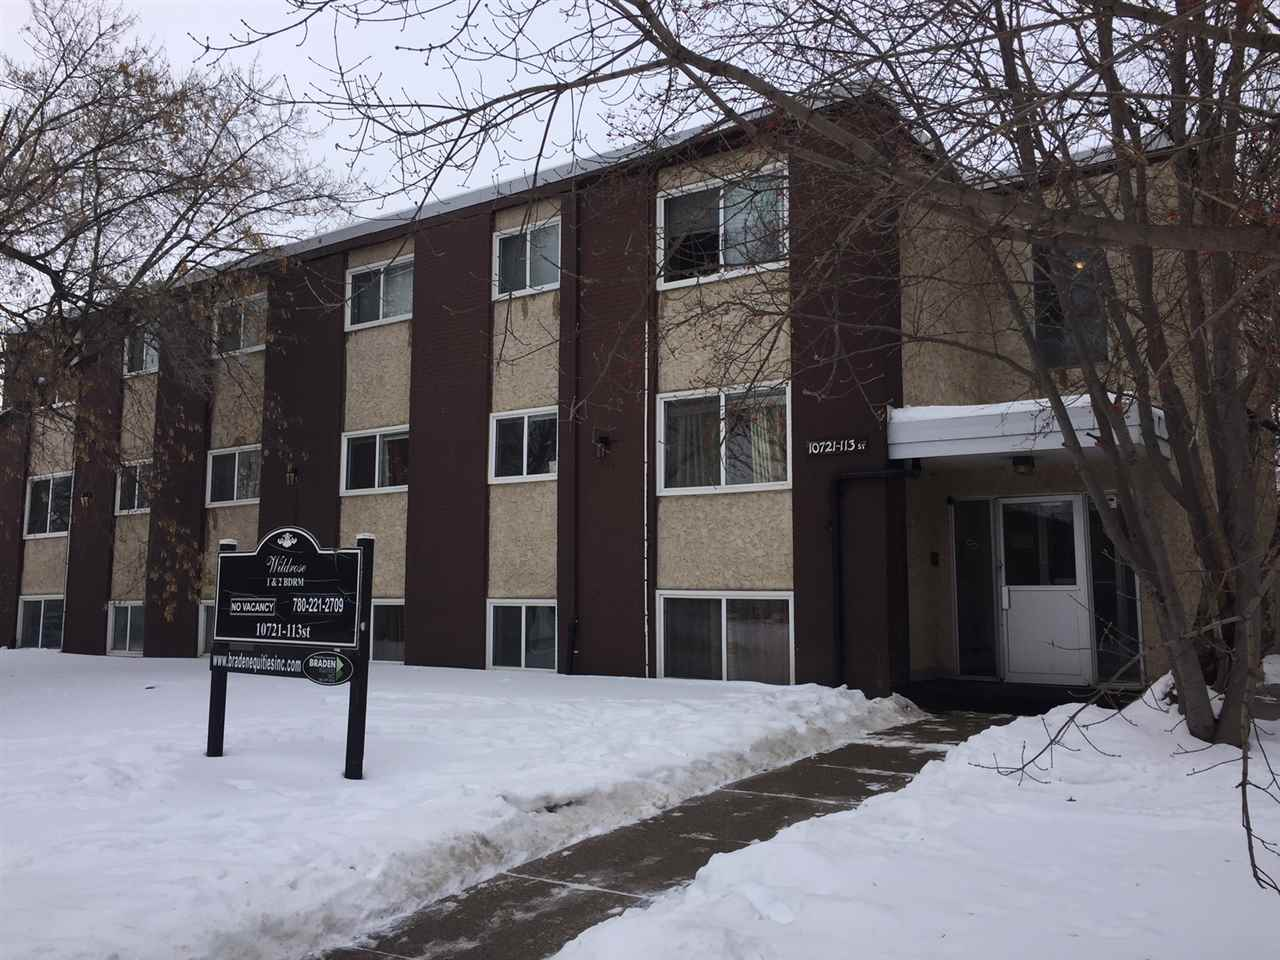 This 2 bedroom condo unit located in the neighbourhood of QUEEN MARY PARK. It comes with one full bath room. It needs TLC. Walking distance to PUBLIC TRANSIT, SHOPPONG, SCHOOLS. Close to GRANT MACEWAN. Quick walk to downtown.